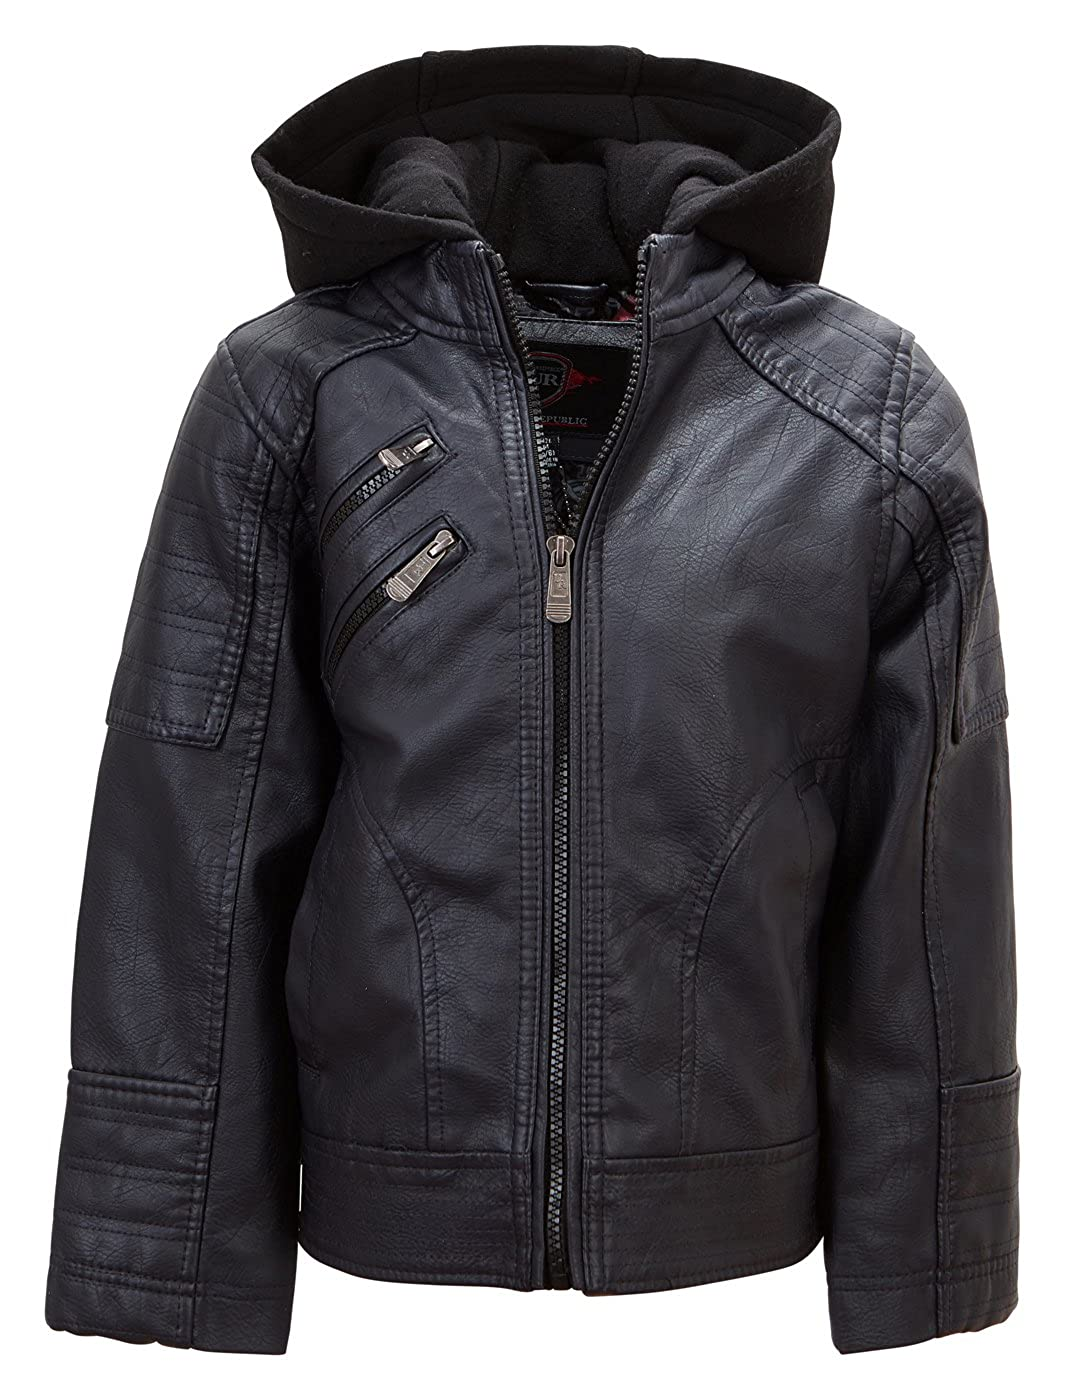 Urban Republic Boys Faux Leather Jacket Cool Motorcycle Biker Kids Winter Coat